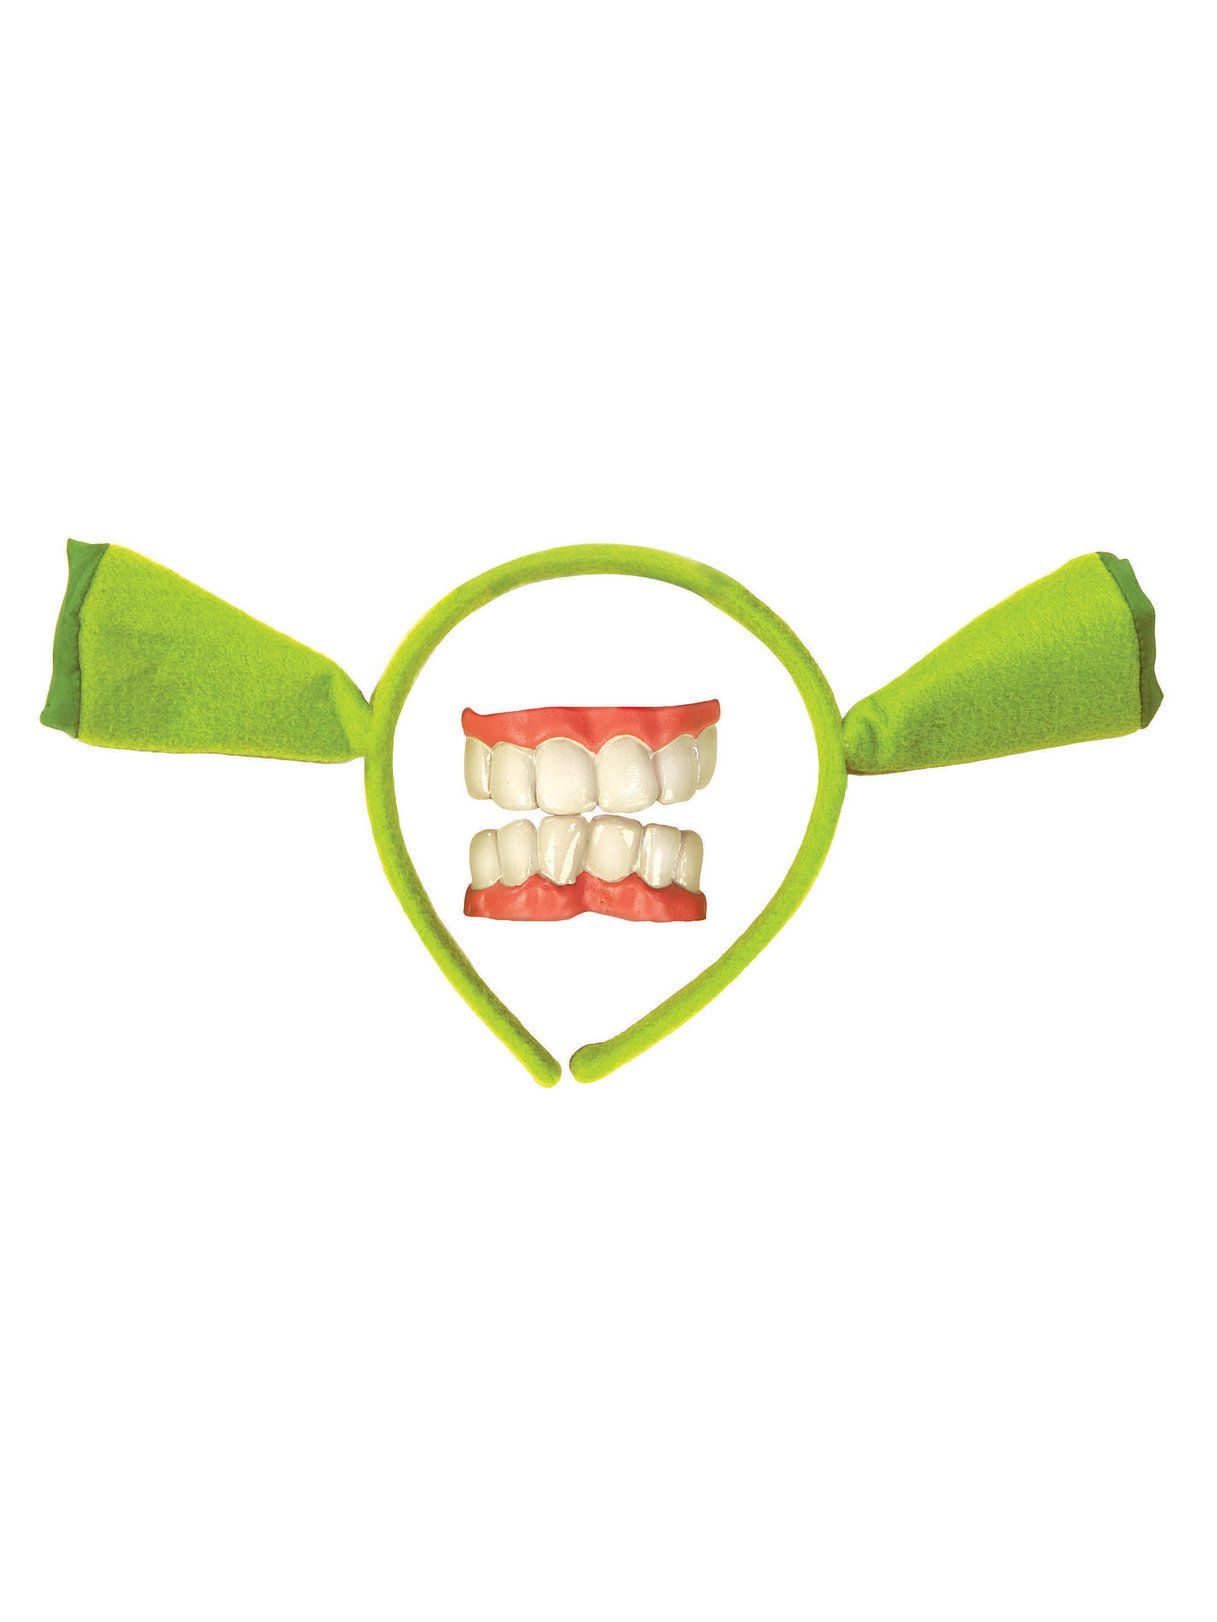 Shrek Ears and Teeth - Costume Accessories for 2018